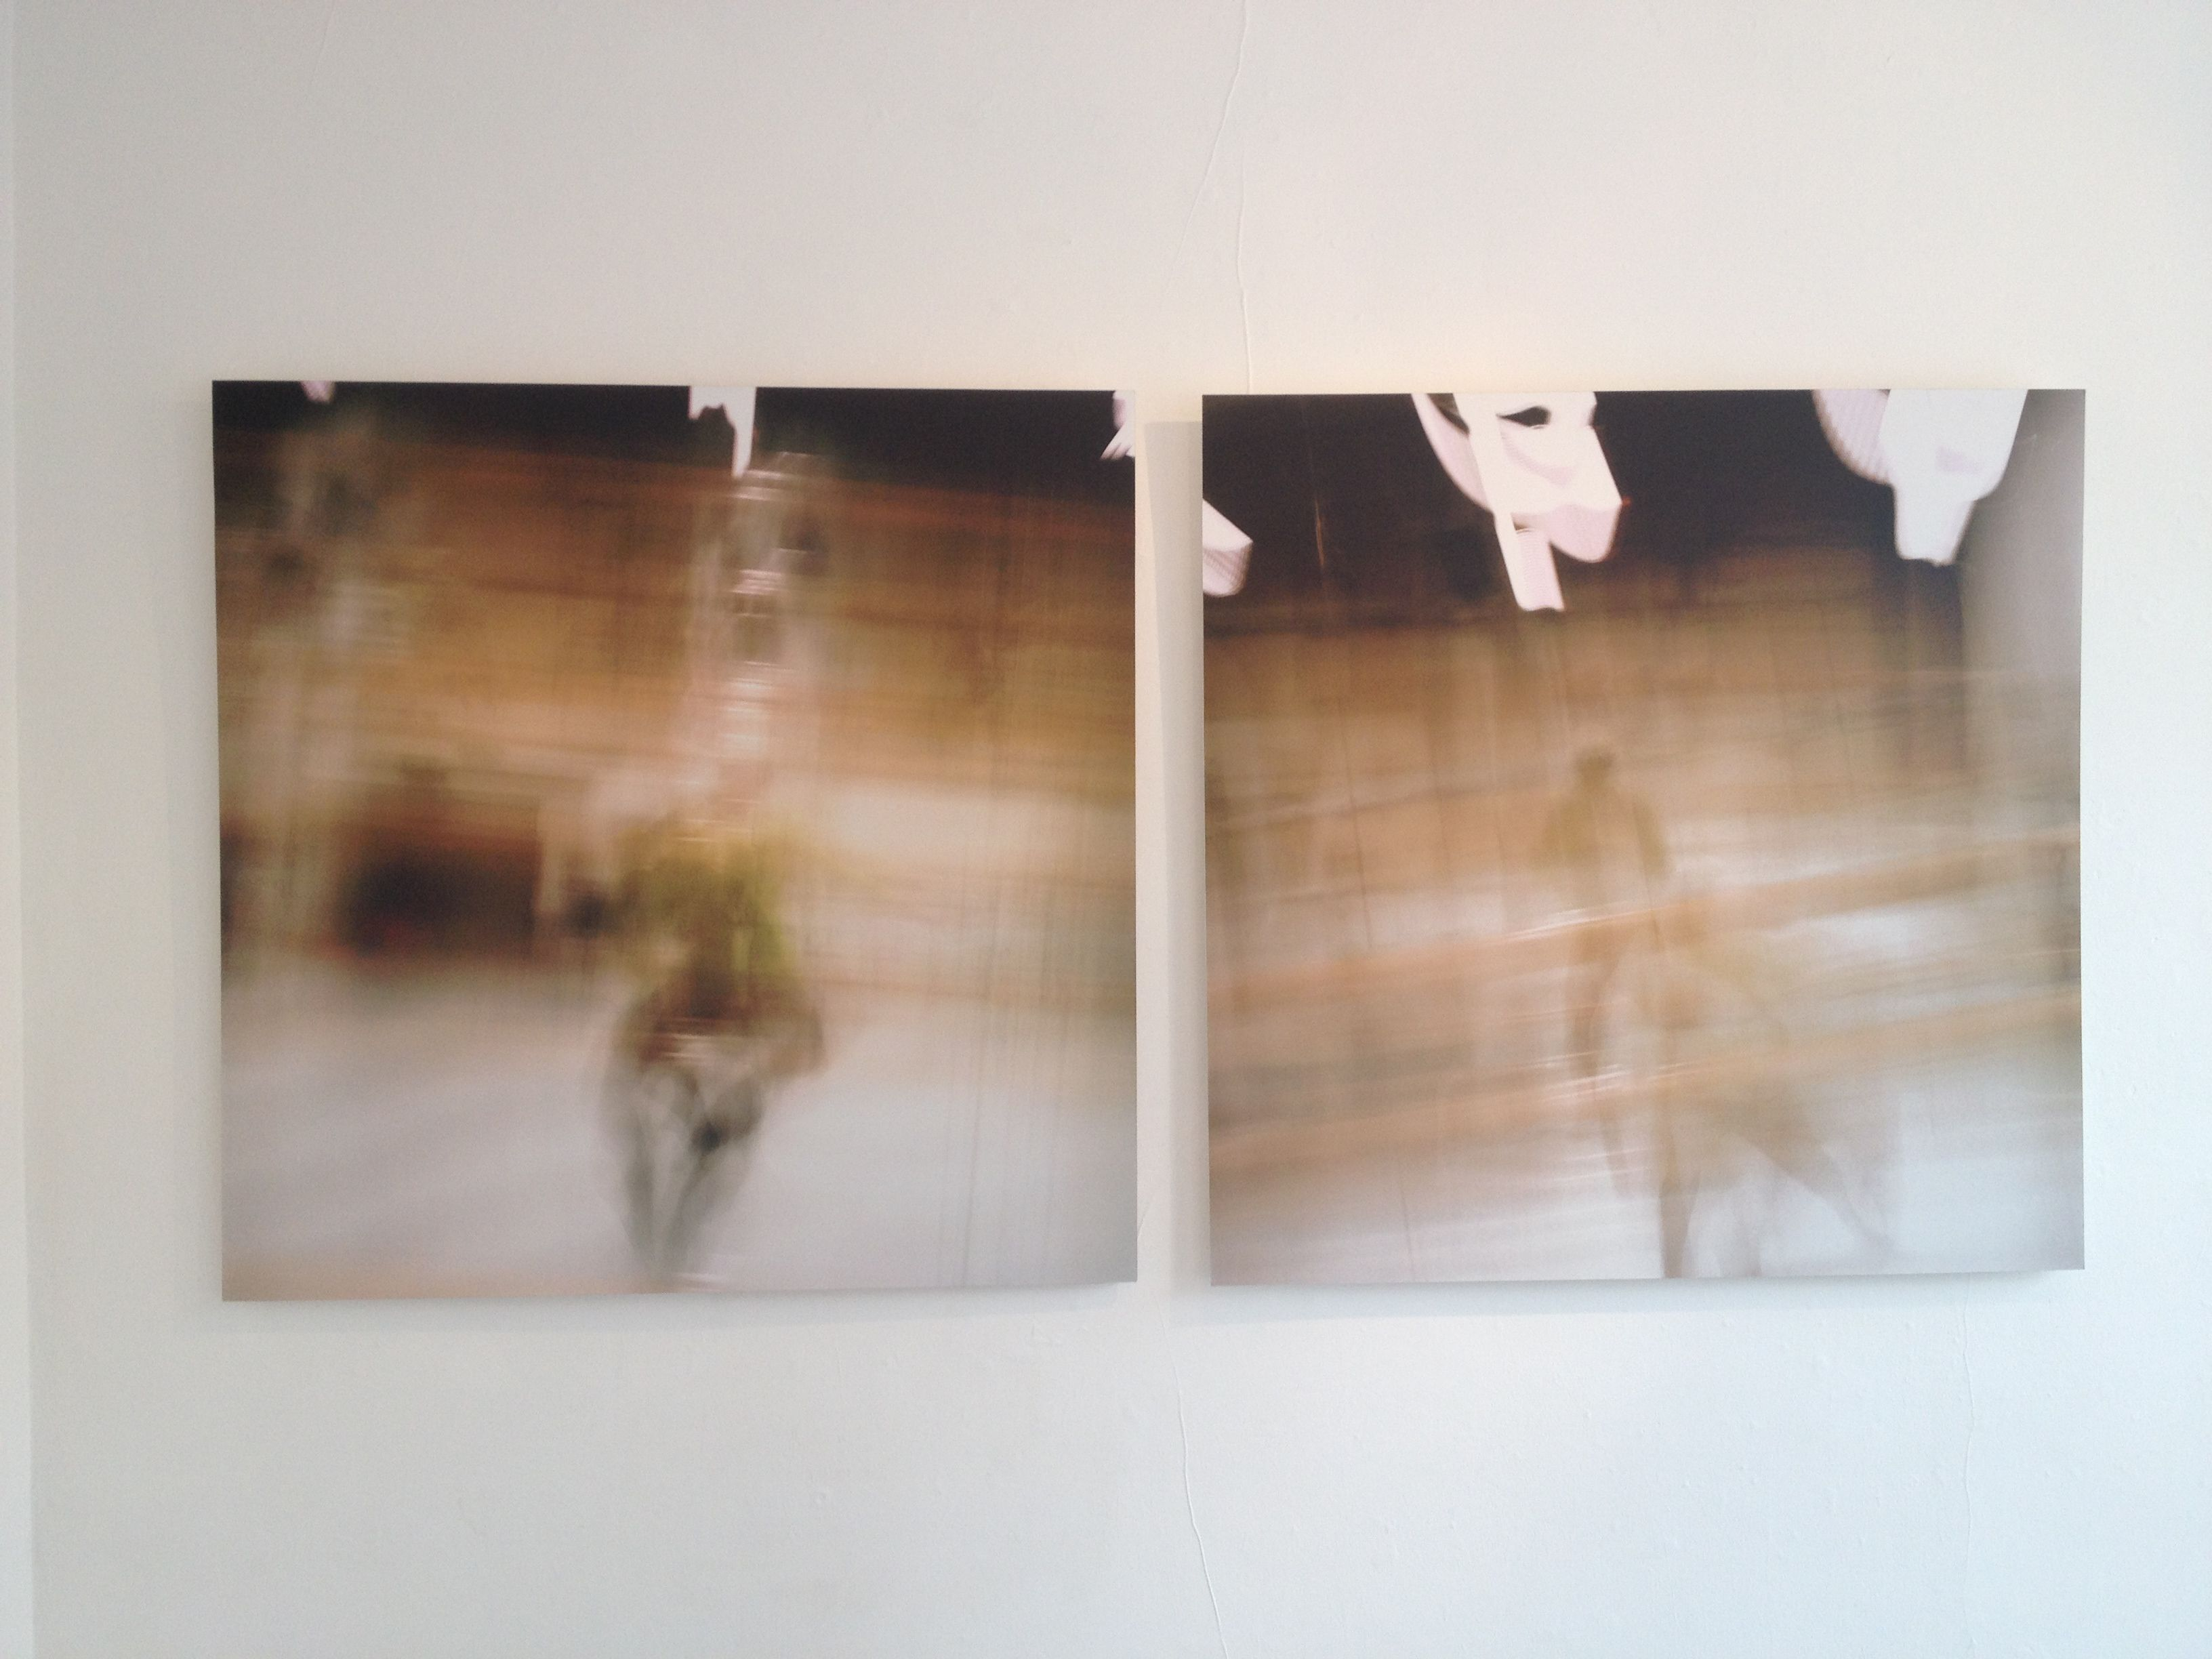 Two large scale photographs by Fiona Harvey.